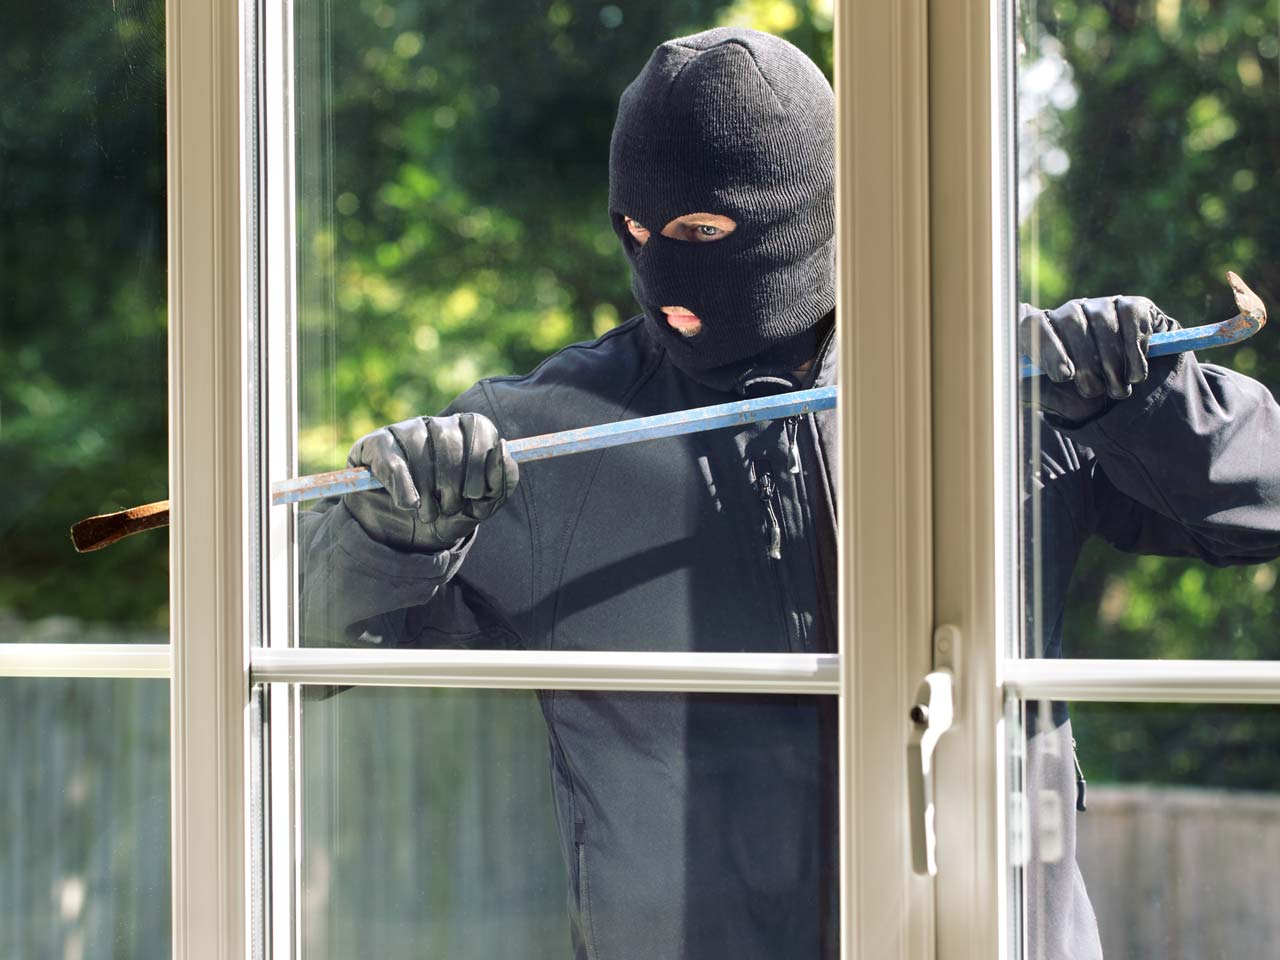 Security window film to protect from forced entry and burglary